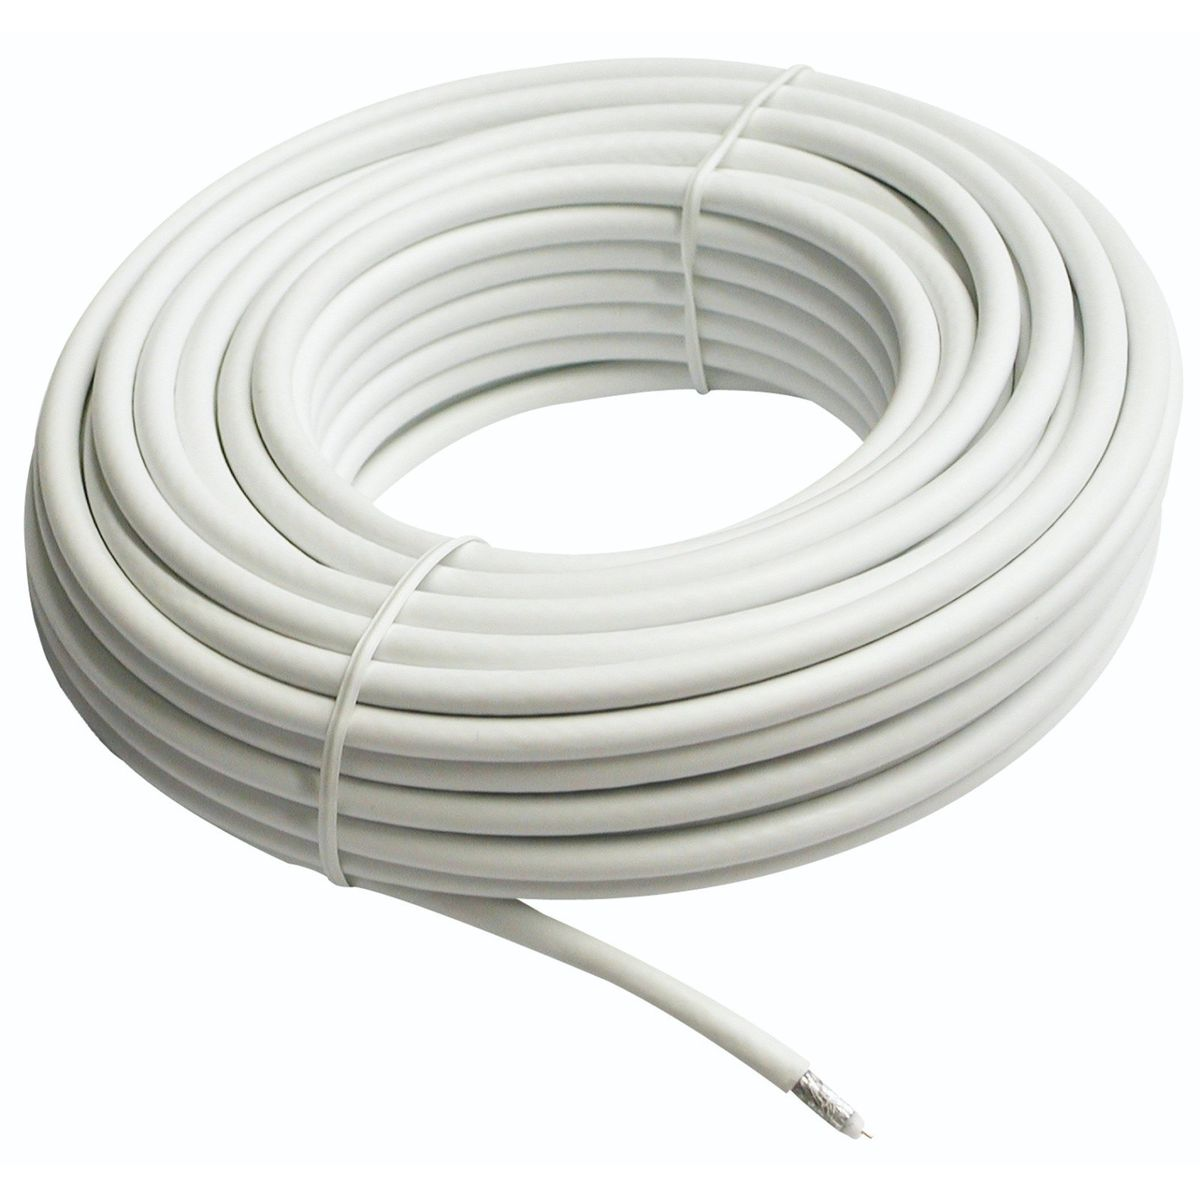 Ellies Coaxial Tv Cable - 20m | Buy Online in South Africa ...